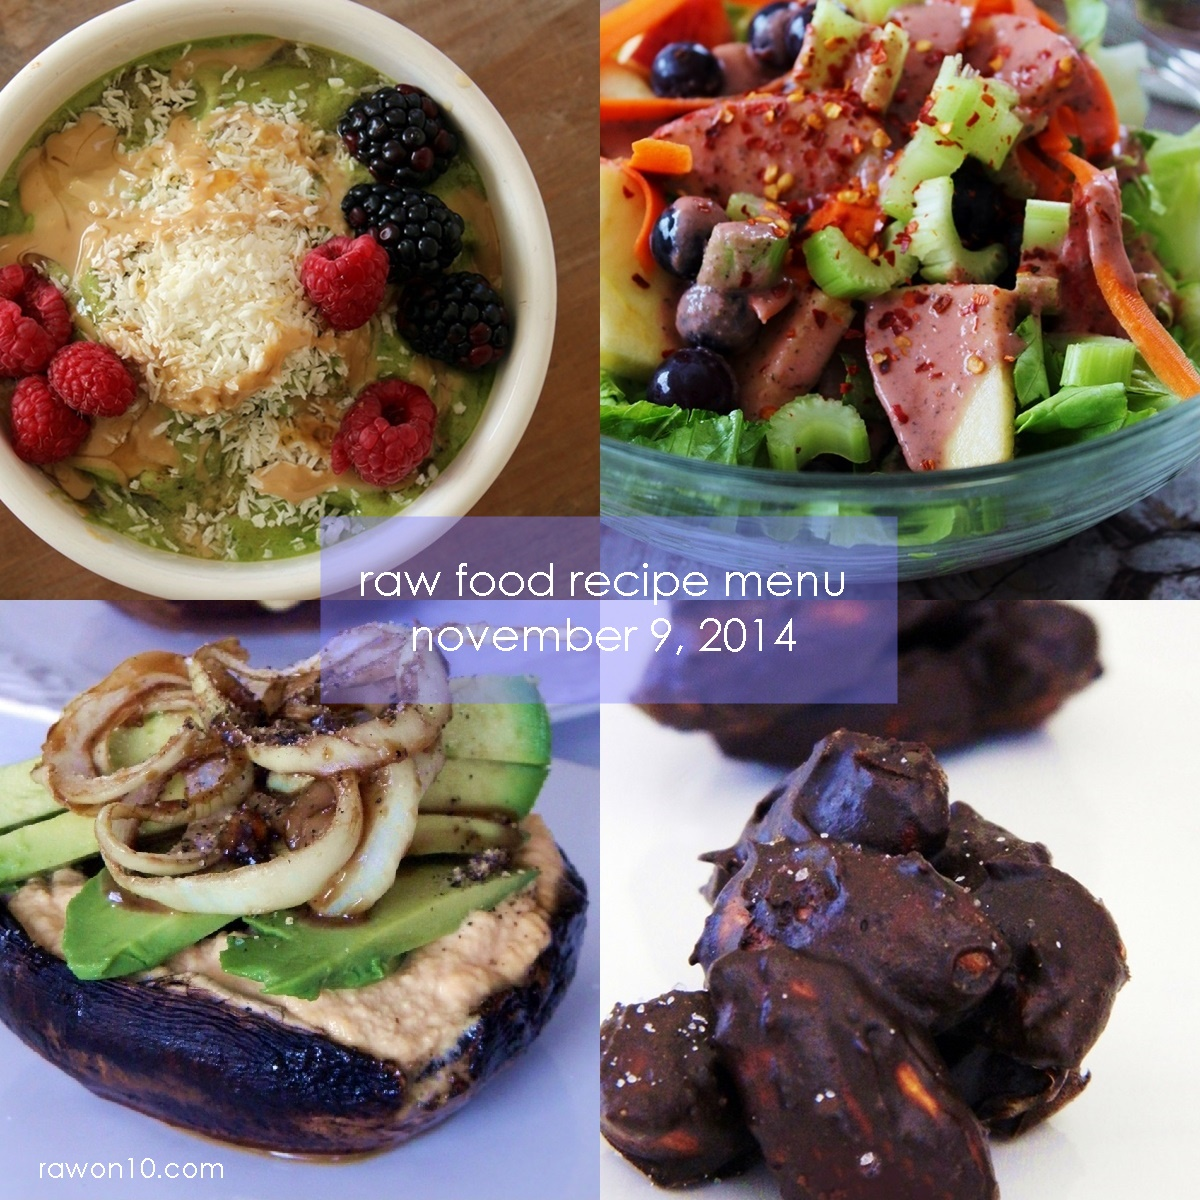 89 raw food ideas for lunch my top 4 favorite raw vegan gluten raw food recipe menu november 9 2014 forumfinder Images